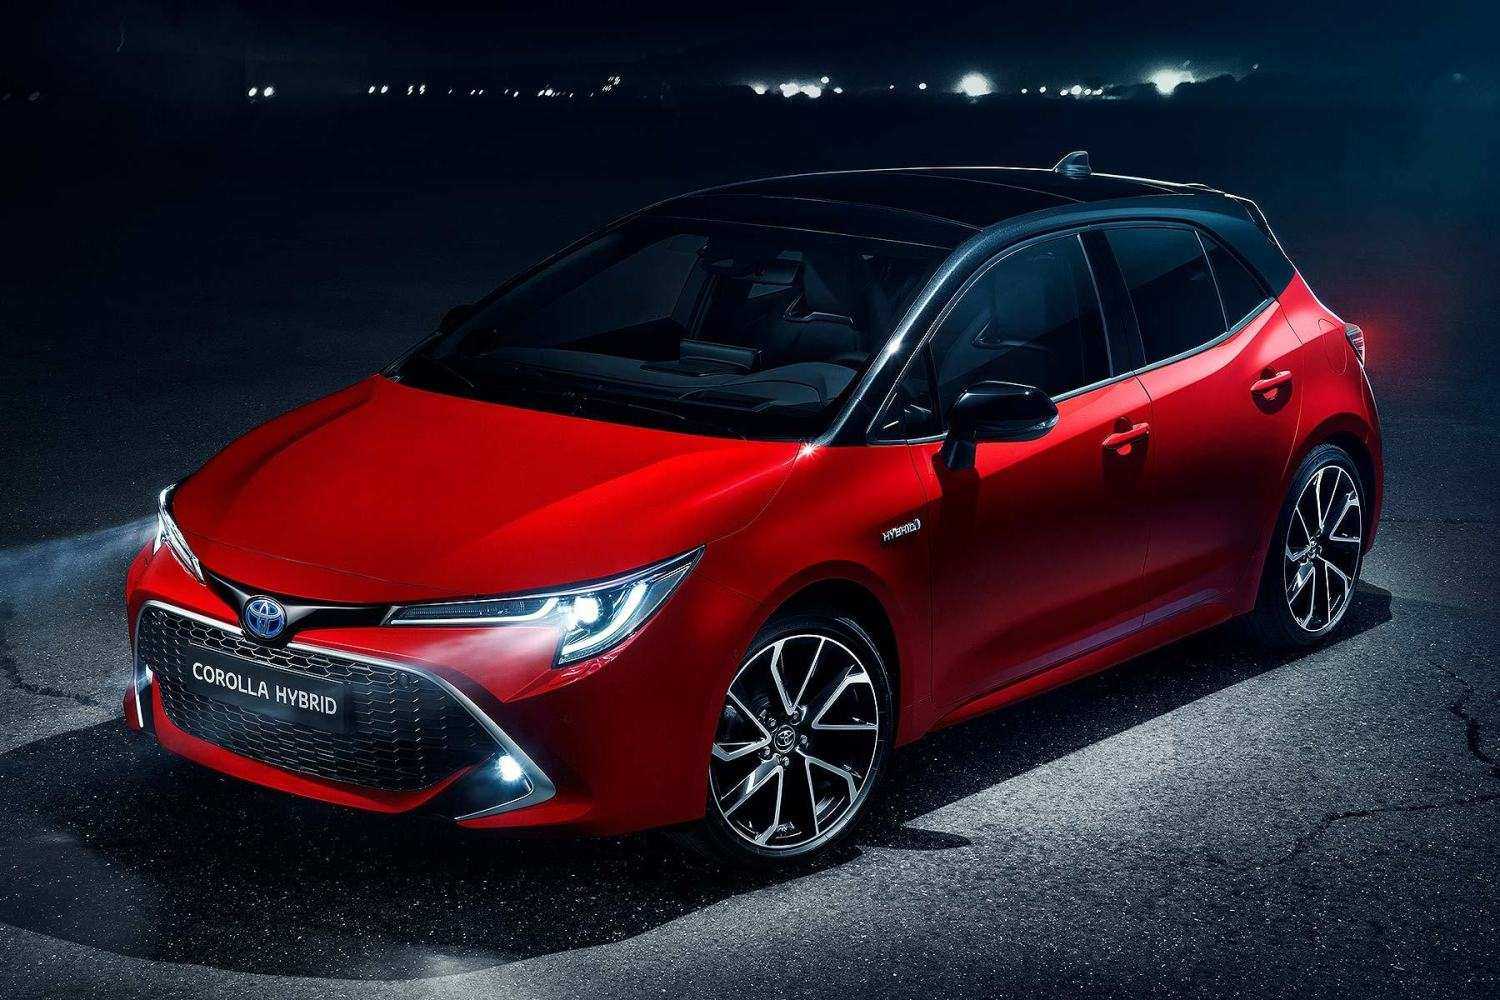 44 All New Toyota Corolla 2019 Uk Release Date